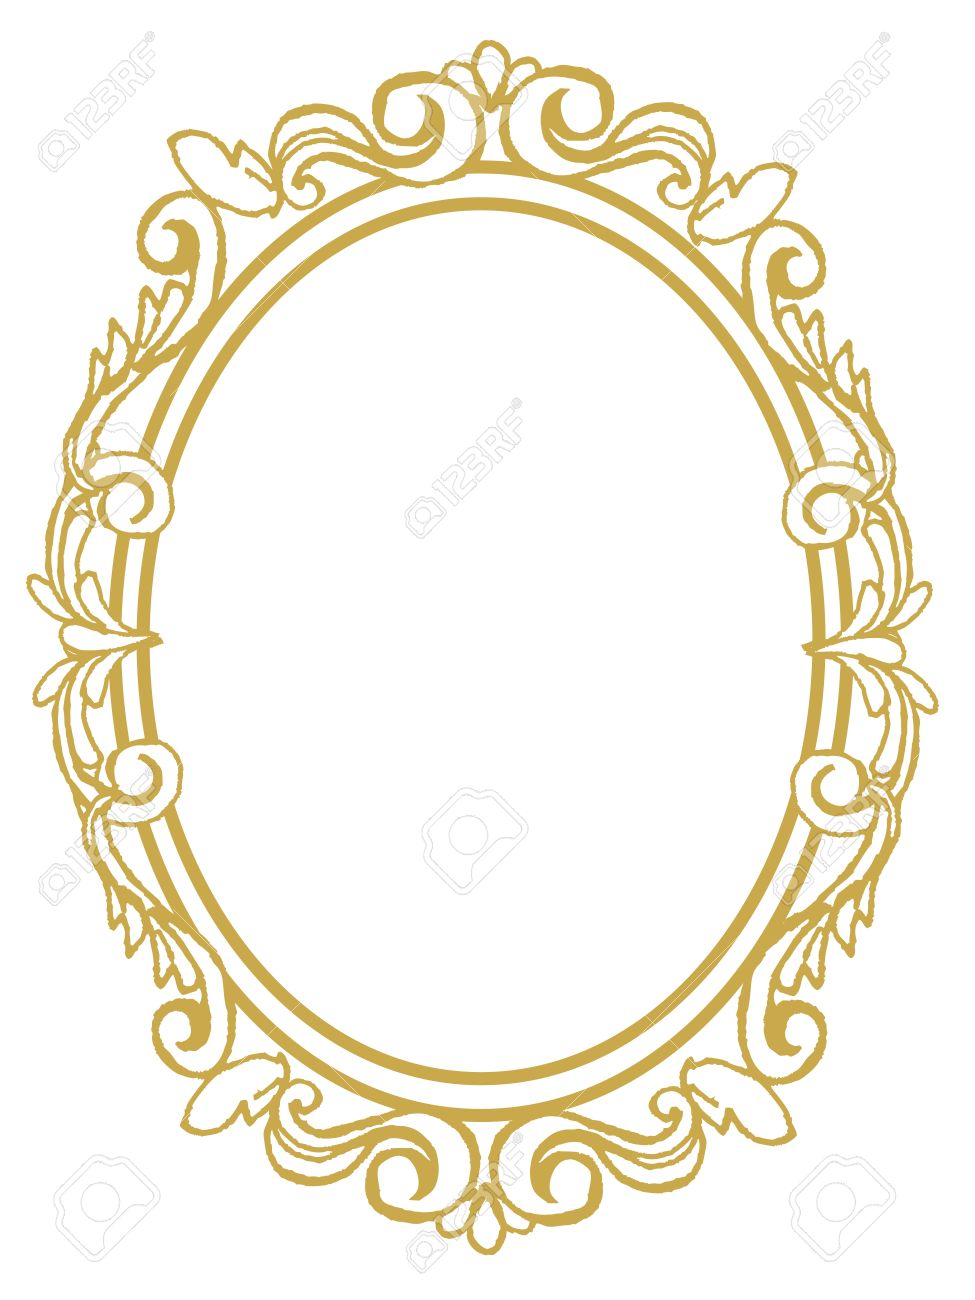 Golden Frame With Ornaments In Gold For Pictures Or Mirror Royalty Free Cliparts Vectors And Stock Illustration Image 63387108